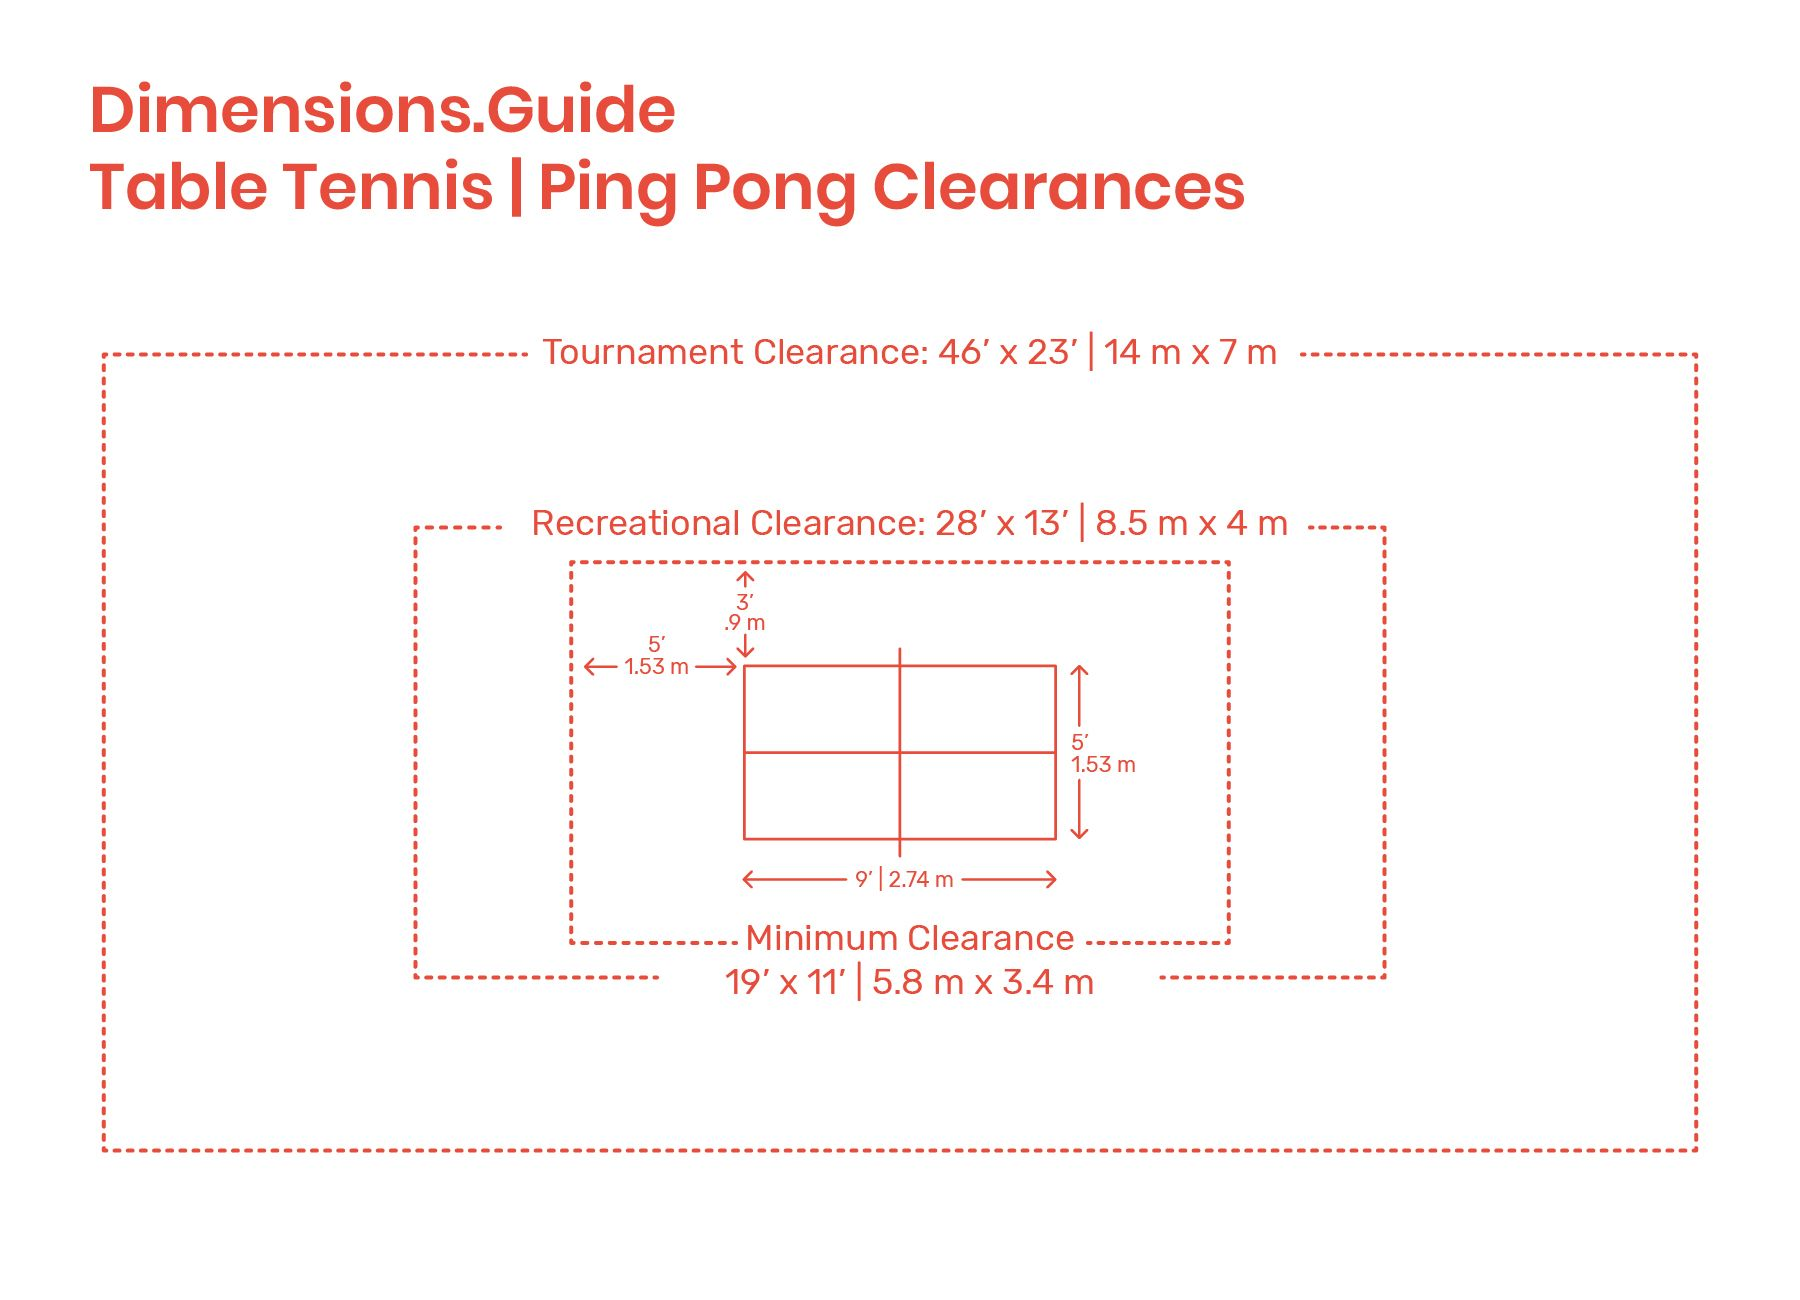 Table Tennis Ping Pong Clearances Table Tennis Table Tennis Dimensions Ping Pong